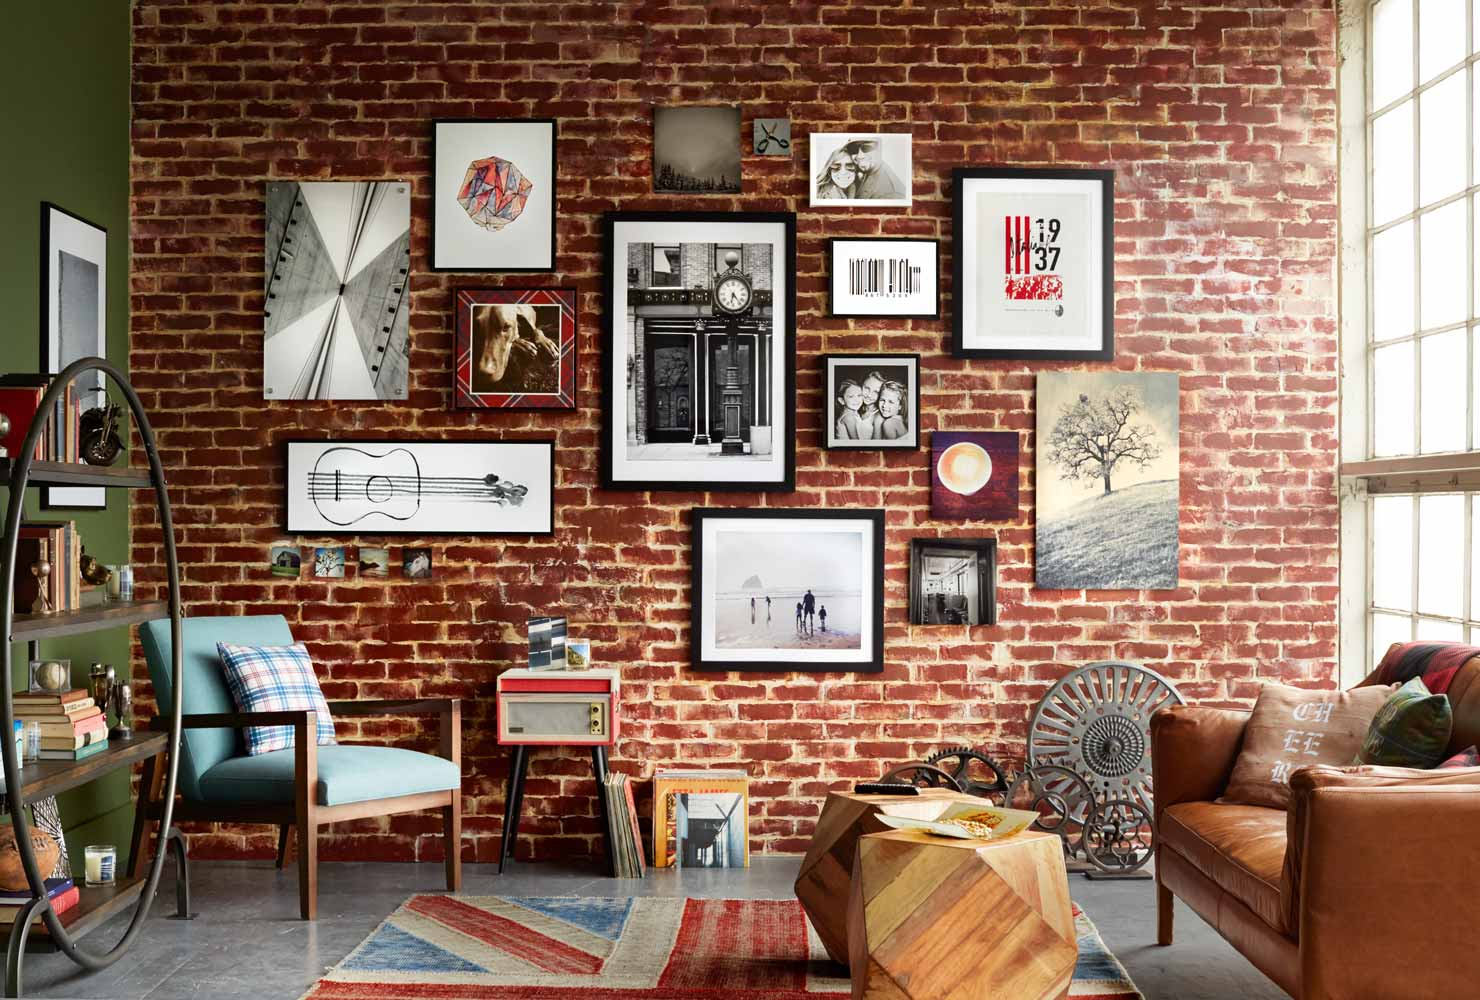 Brick wall with hanging pictures.